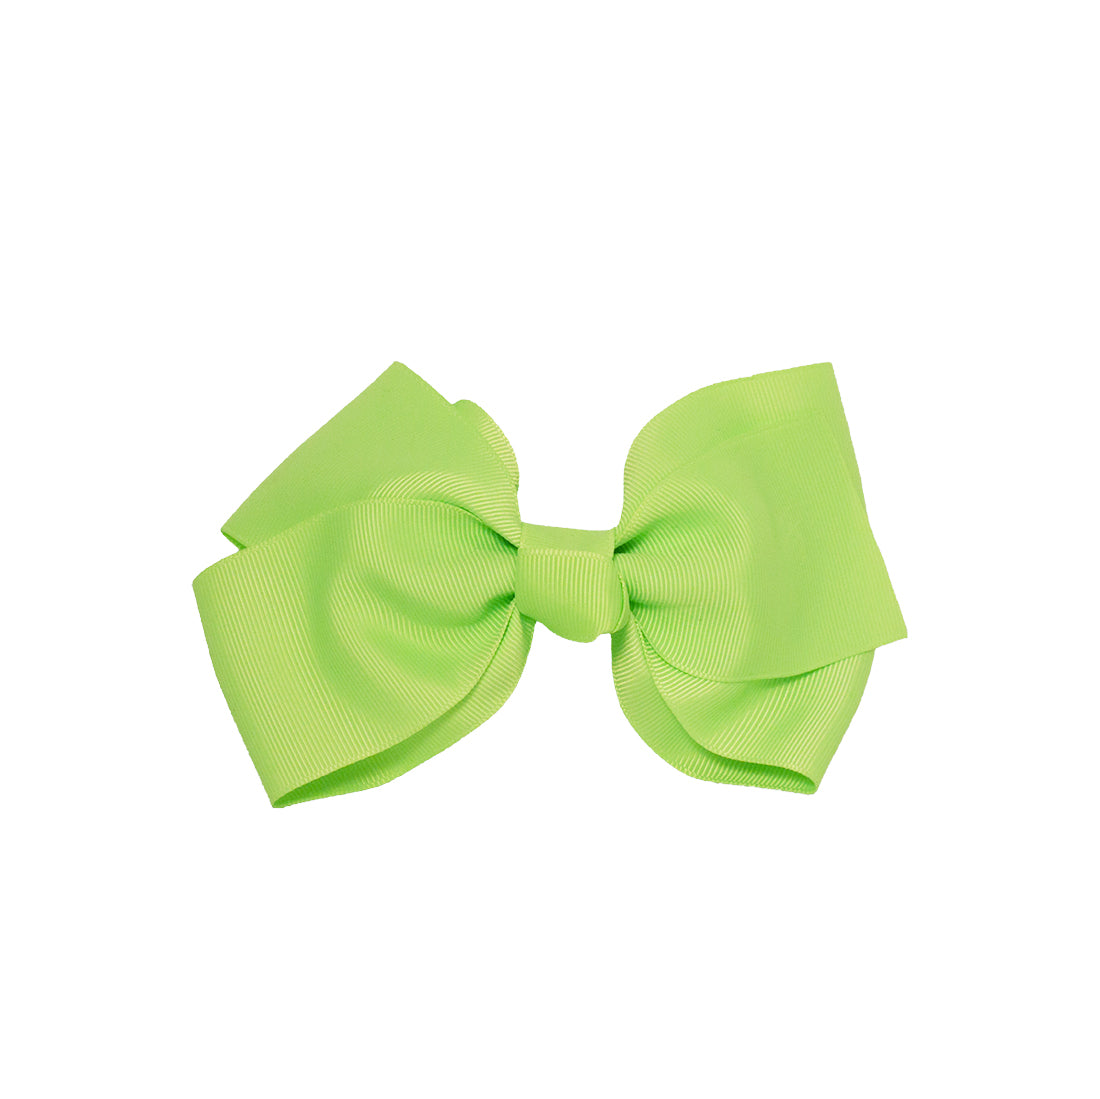 Mia® Spirit Grosgrain Ribbon Bow Barrette - large size - lime green color - designed by #MiaKaminski of Mia Beauty